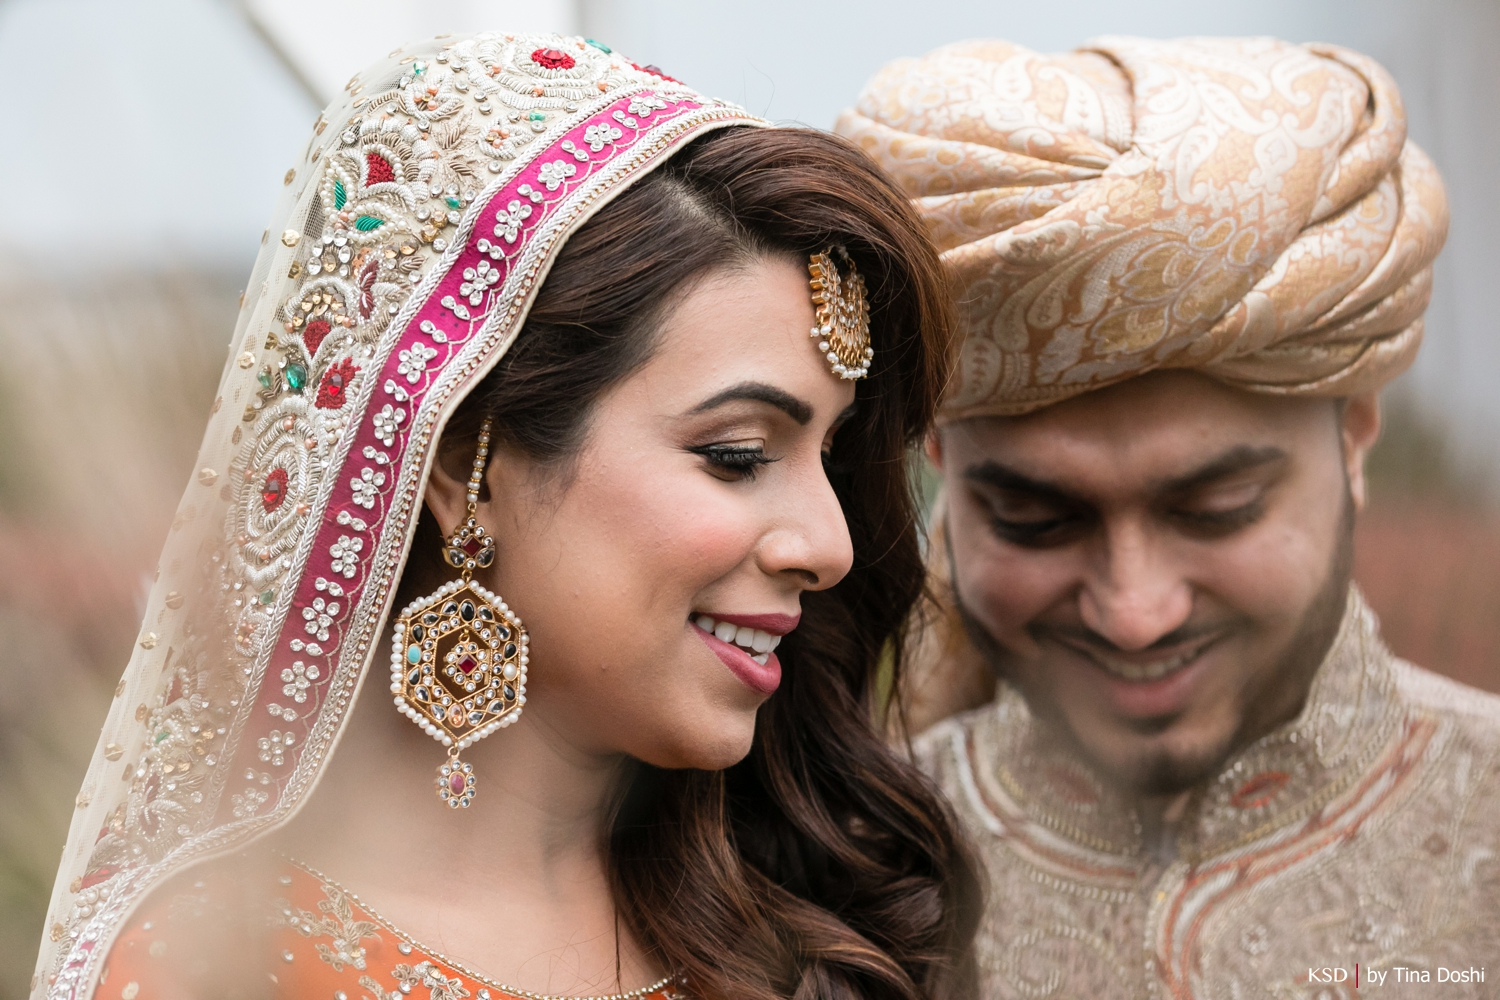 nj_south_asian_wedding_0021